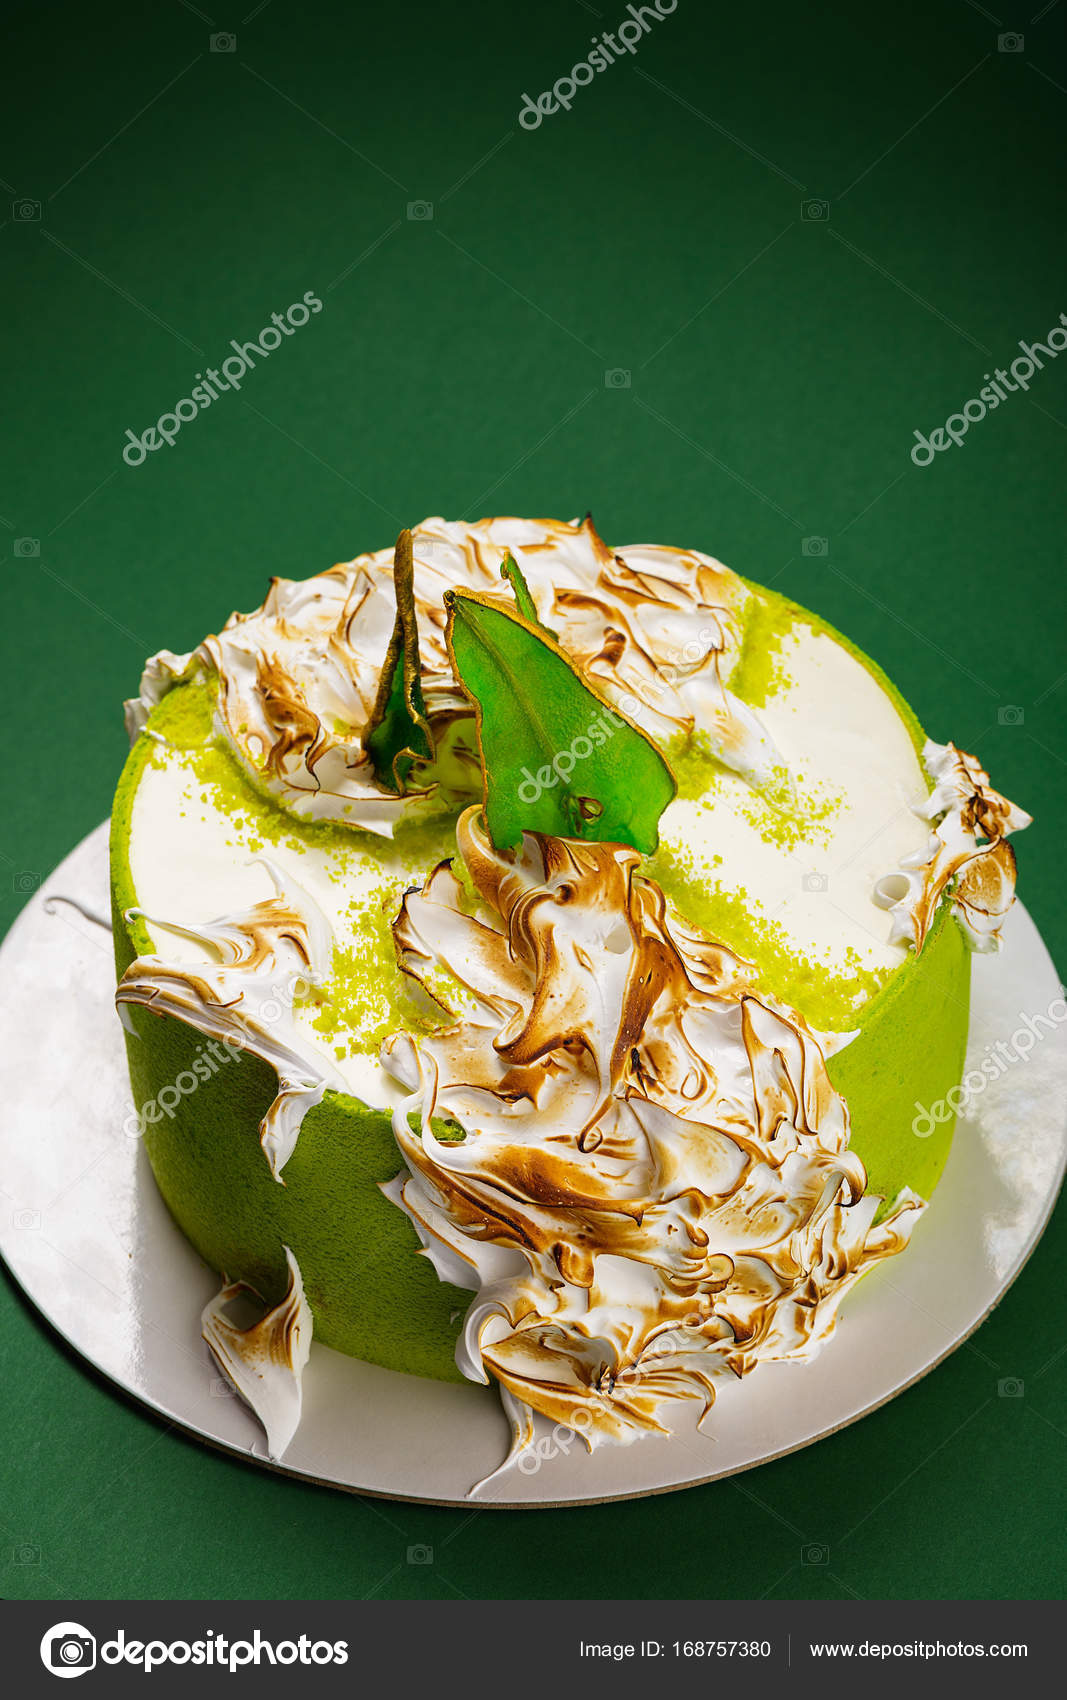 Birthday Cake With Burned Meringue And Colored Pear Slices On Gr